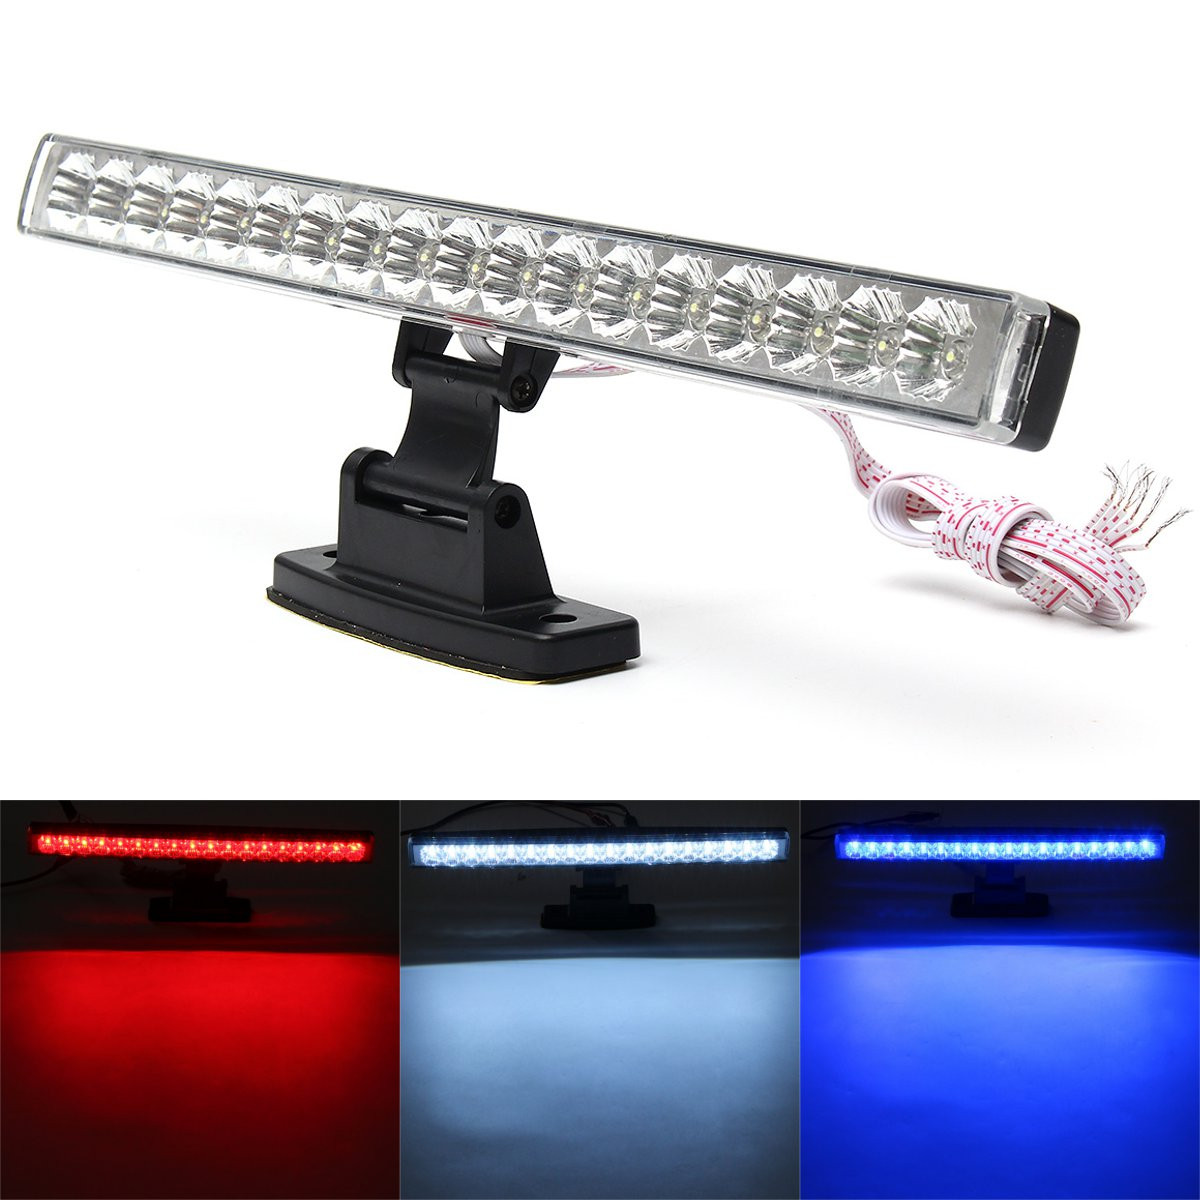 Universal 18 LED Car High Mount Stop Lamp Brake Reverse Turn Signal Running Third Rear Tail Light Bar LED Light car styling tail lights for toyota highlander 2015 led tail lamp rear trunk lamp cover drl signal brake reverse